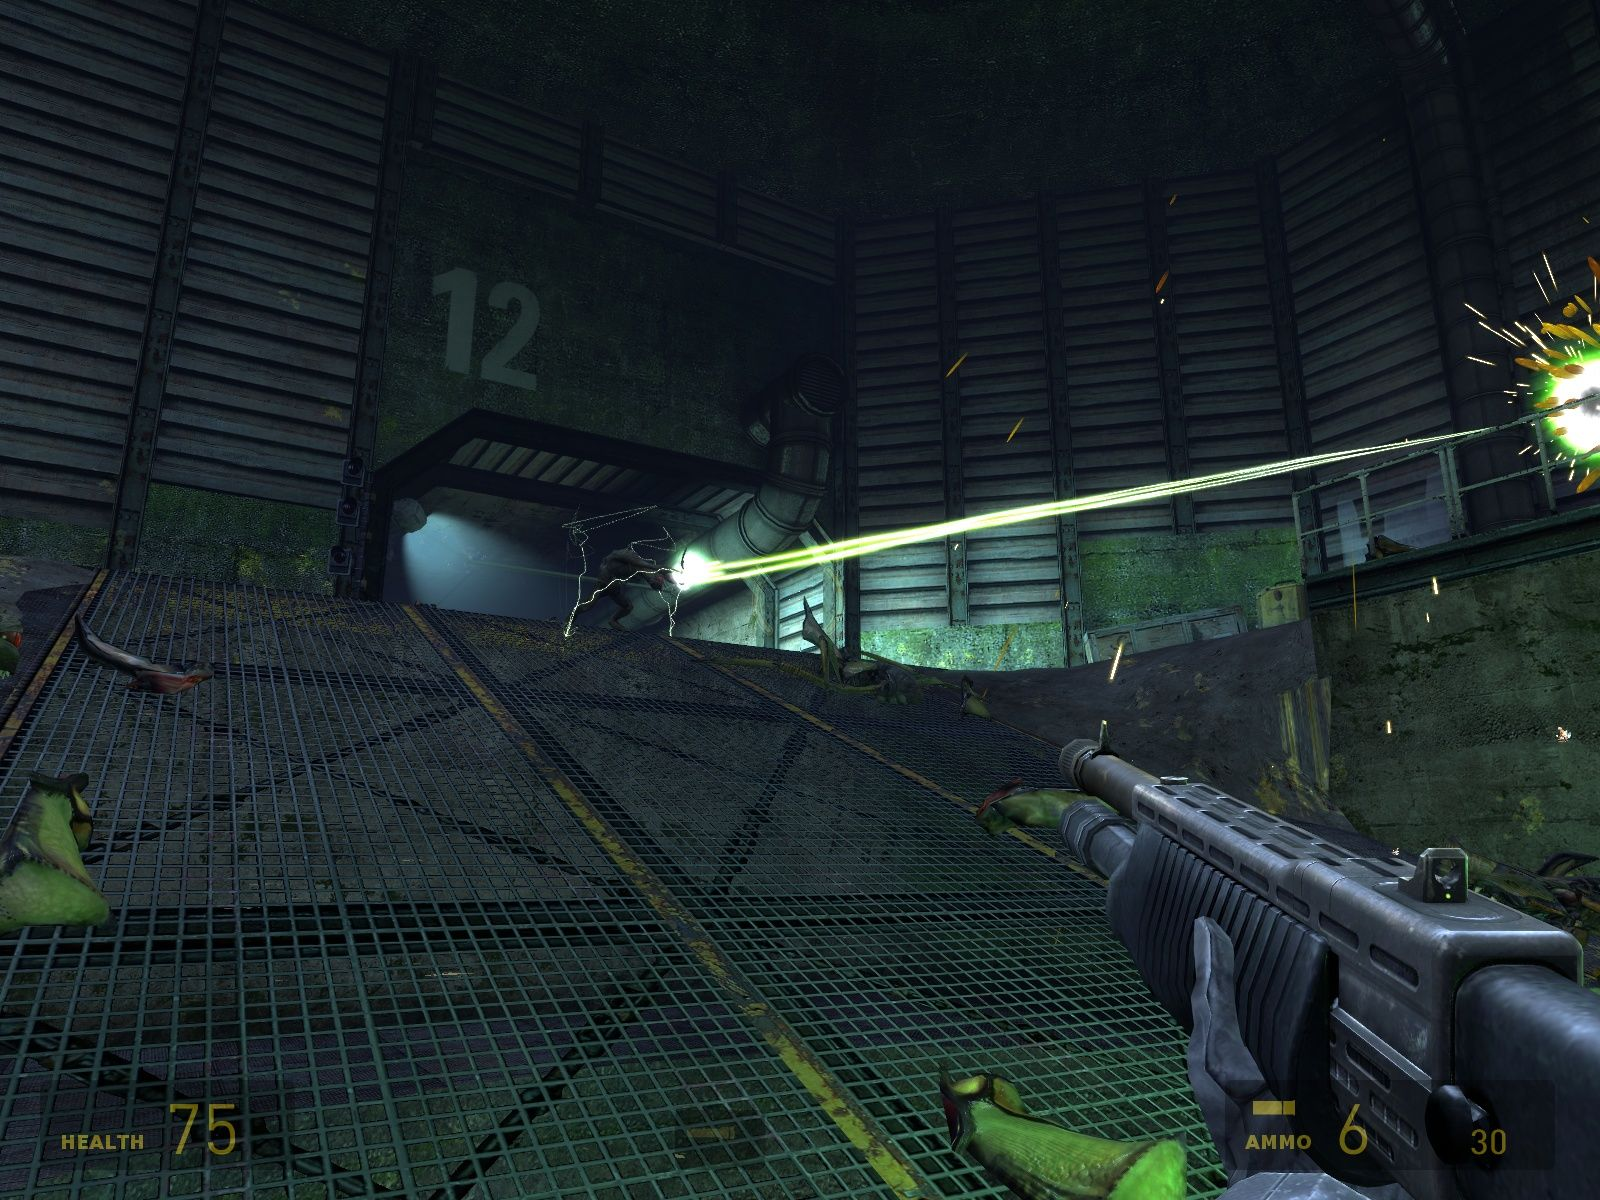 Half-Life 2: Episode Two Windows A Vortigaunt helps defending the position.